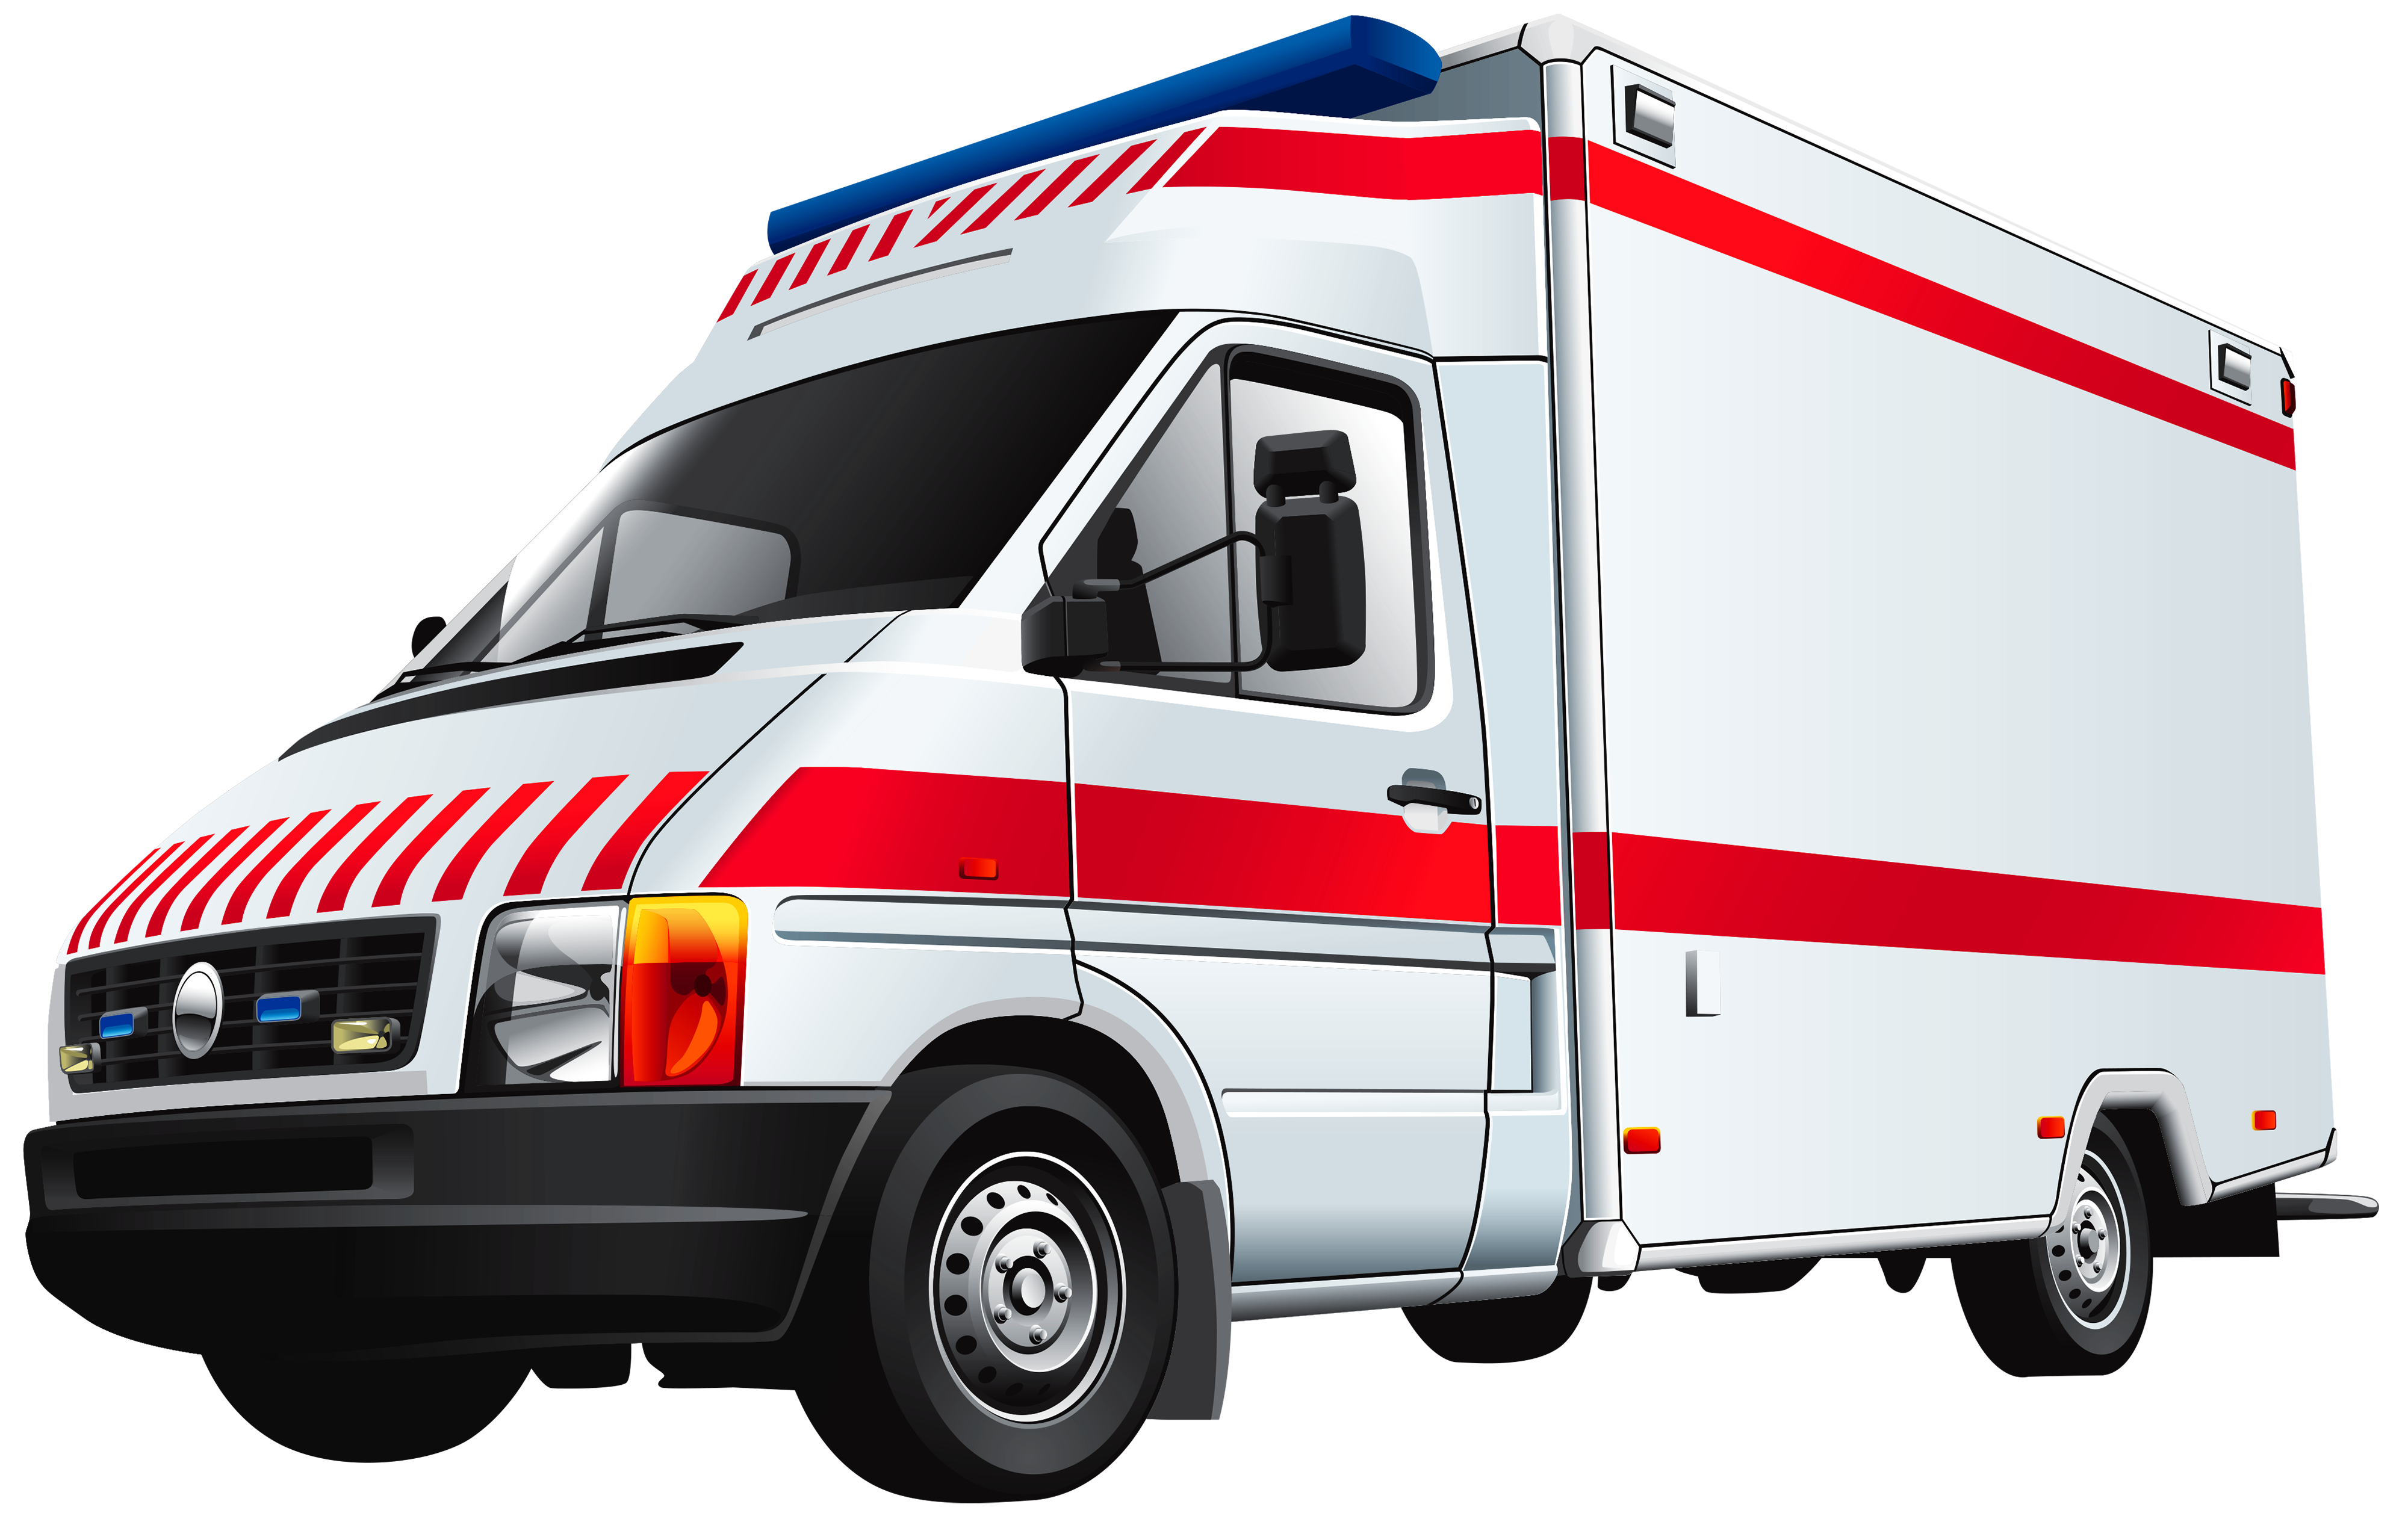 Professional clipart emergency service. Ambulance png clip art